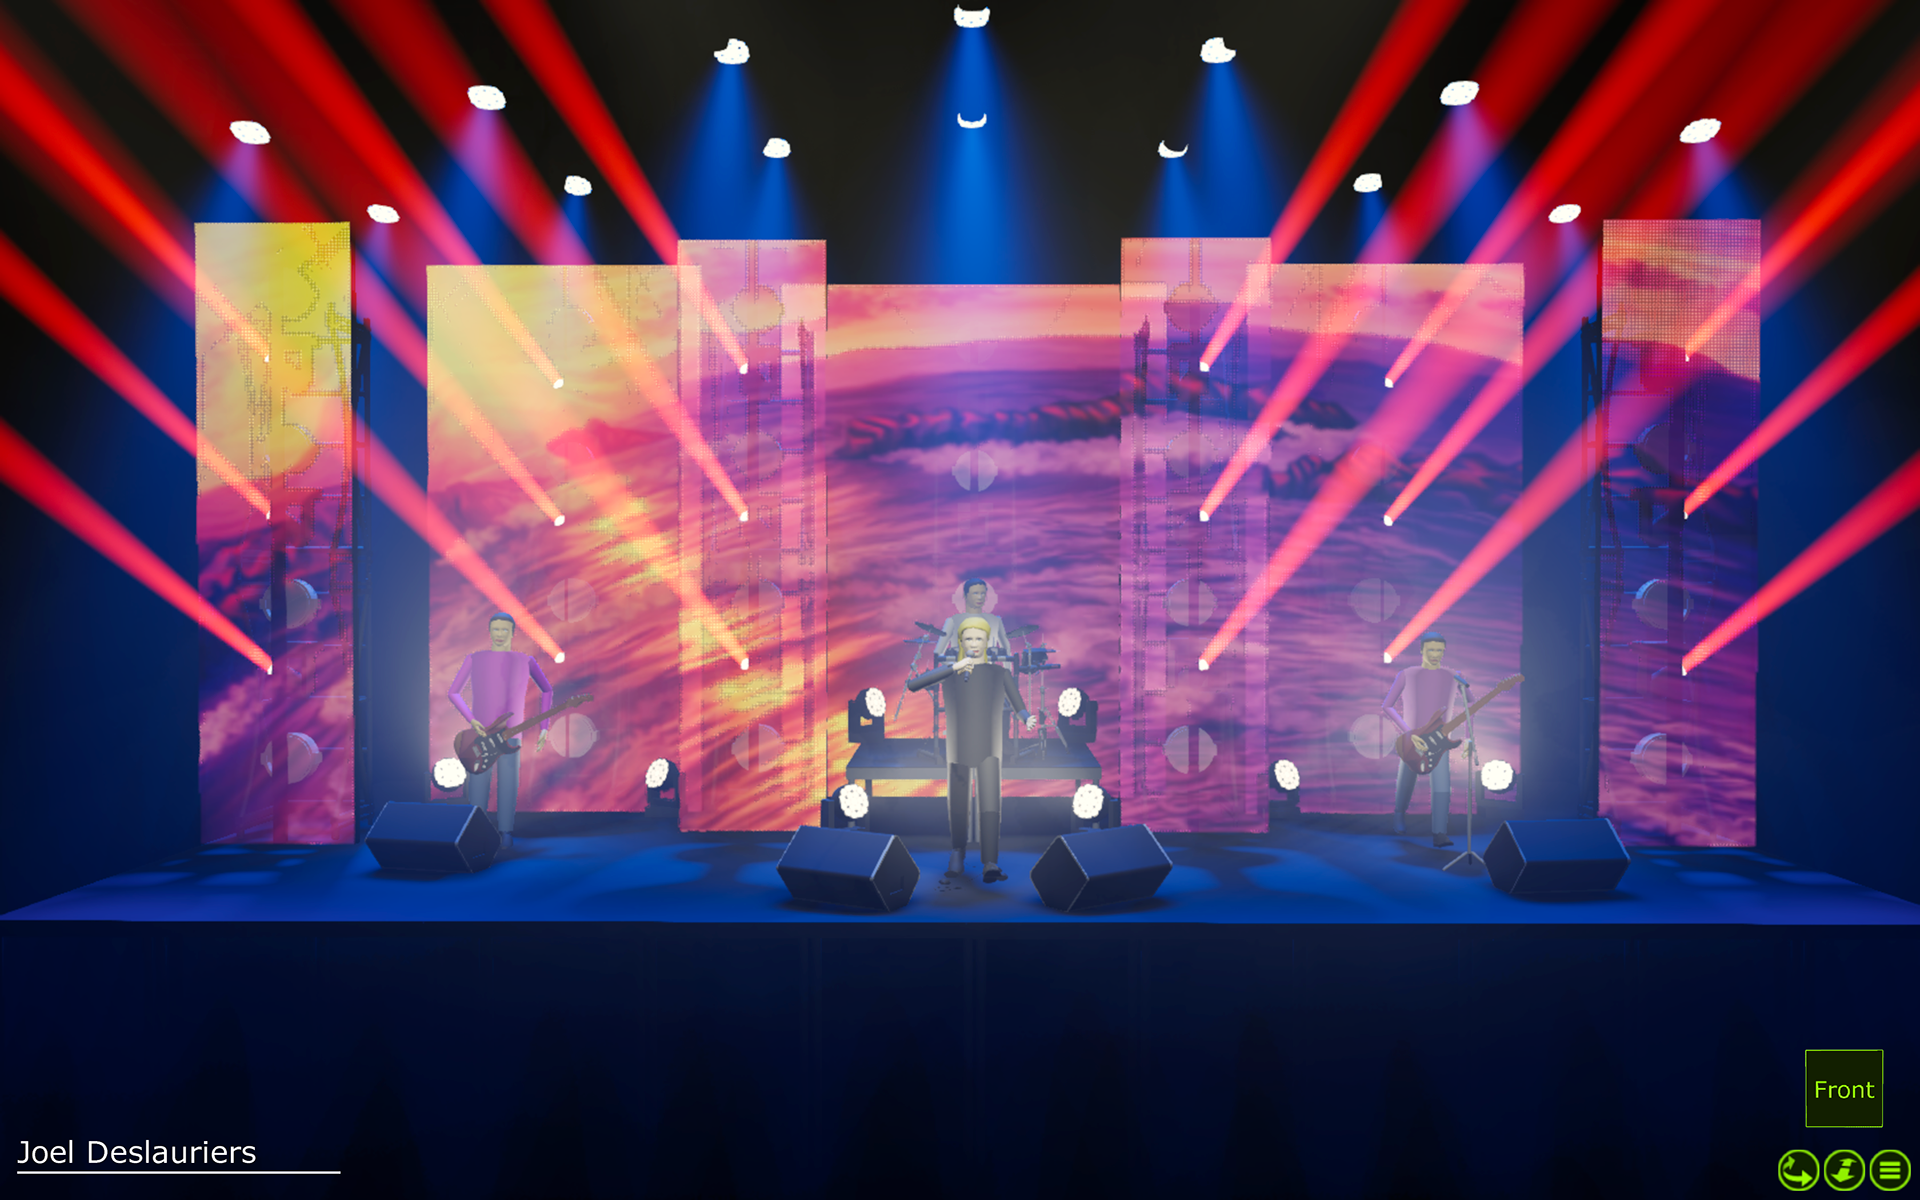 Show, stage, lighting, event designers in Toronto